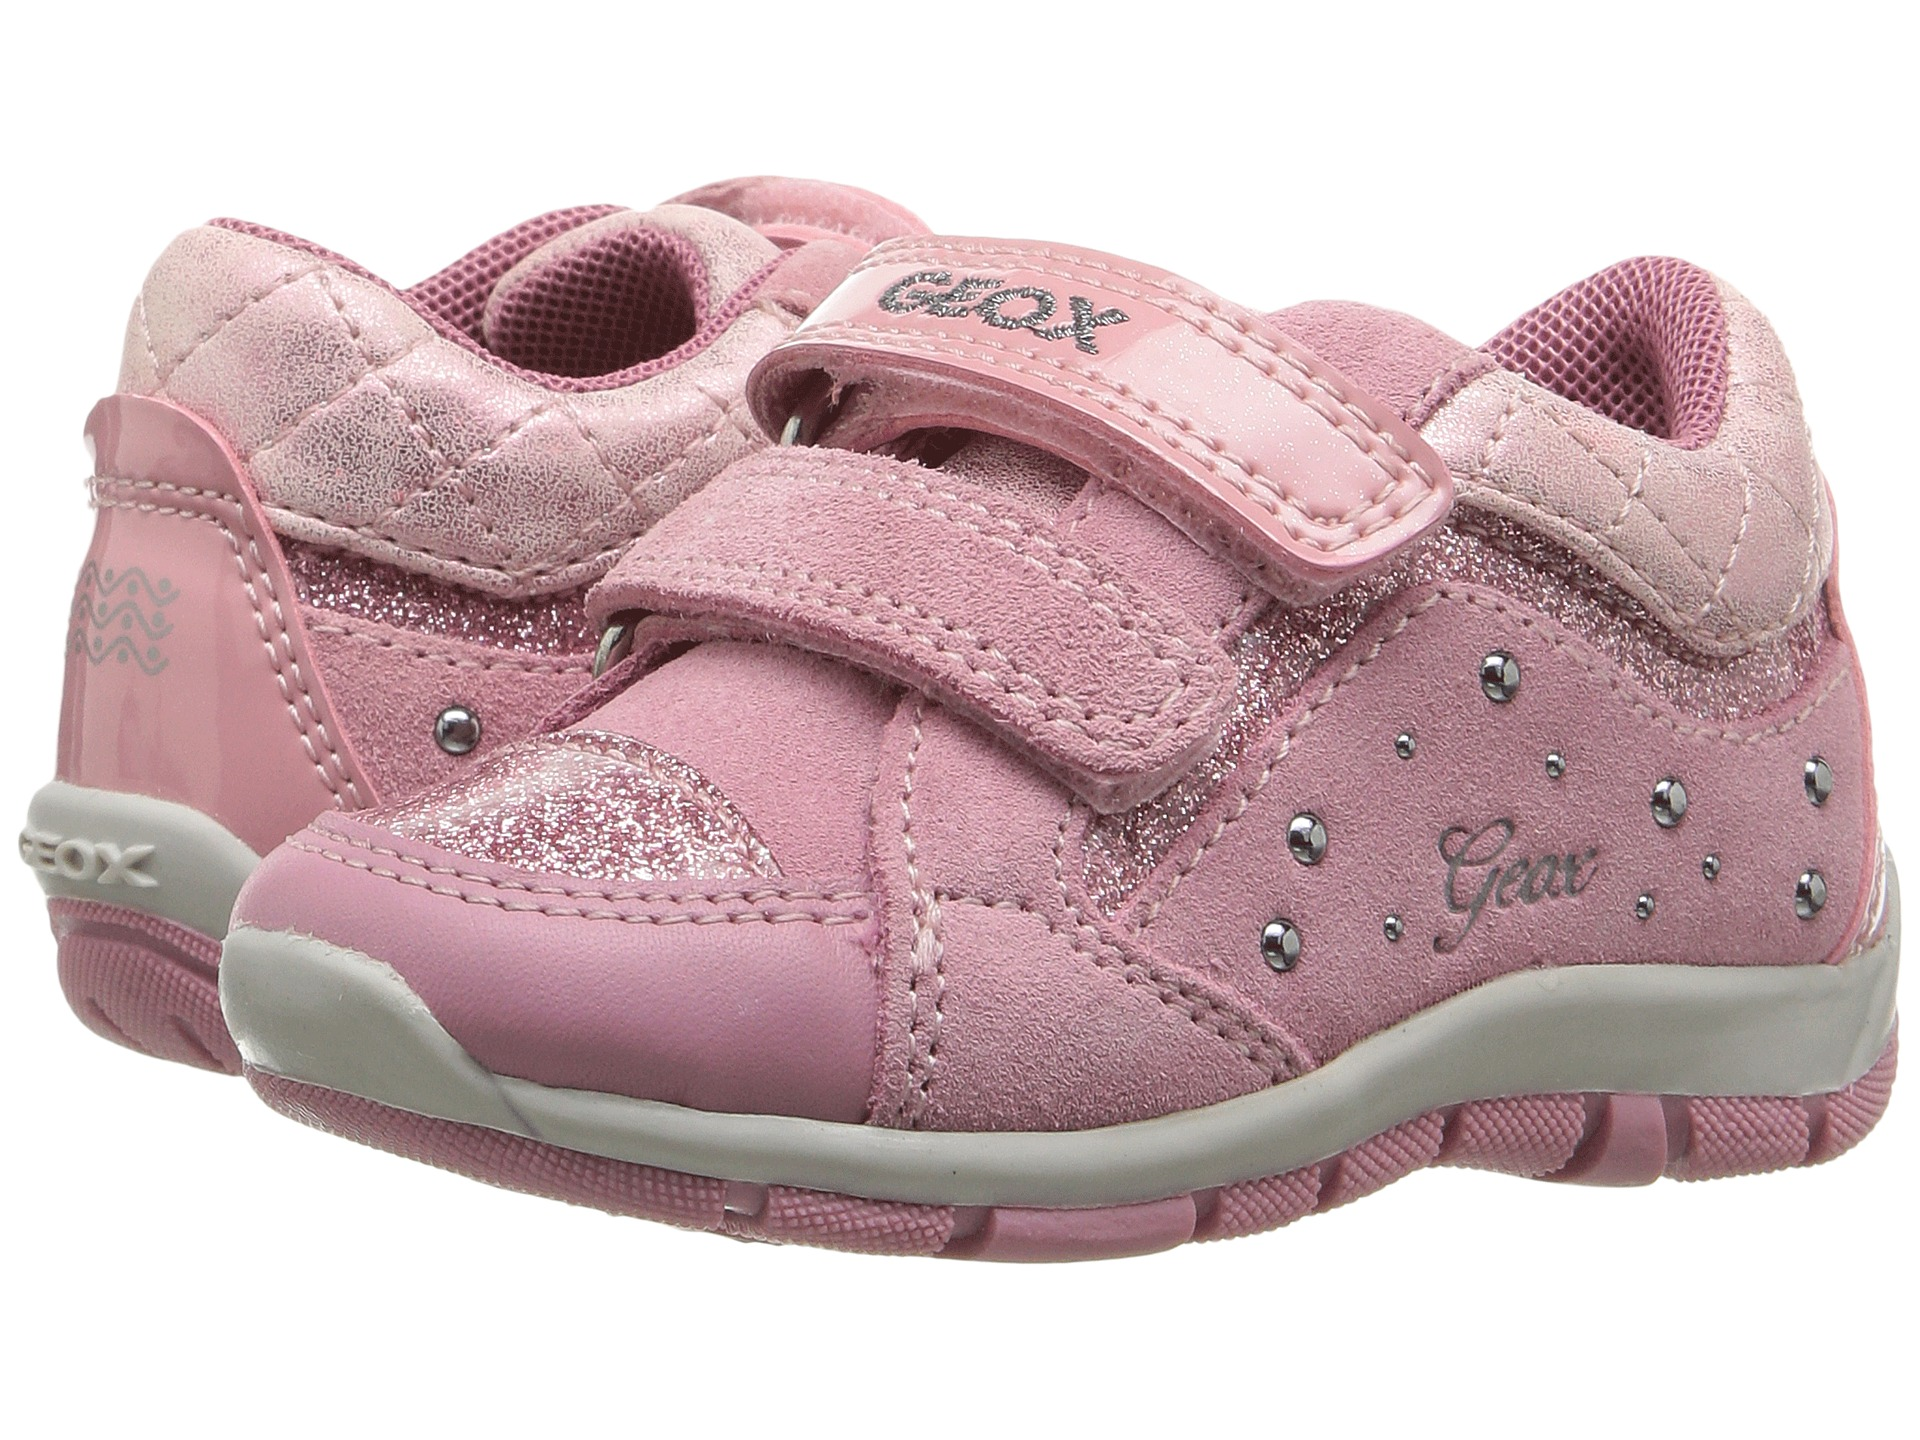 Geox Kids Baby Shaax Girl 14 Toddler at Zappos